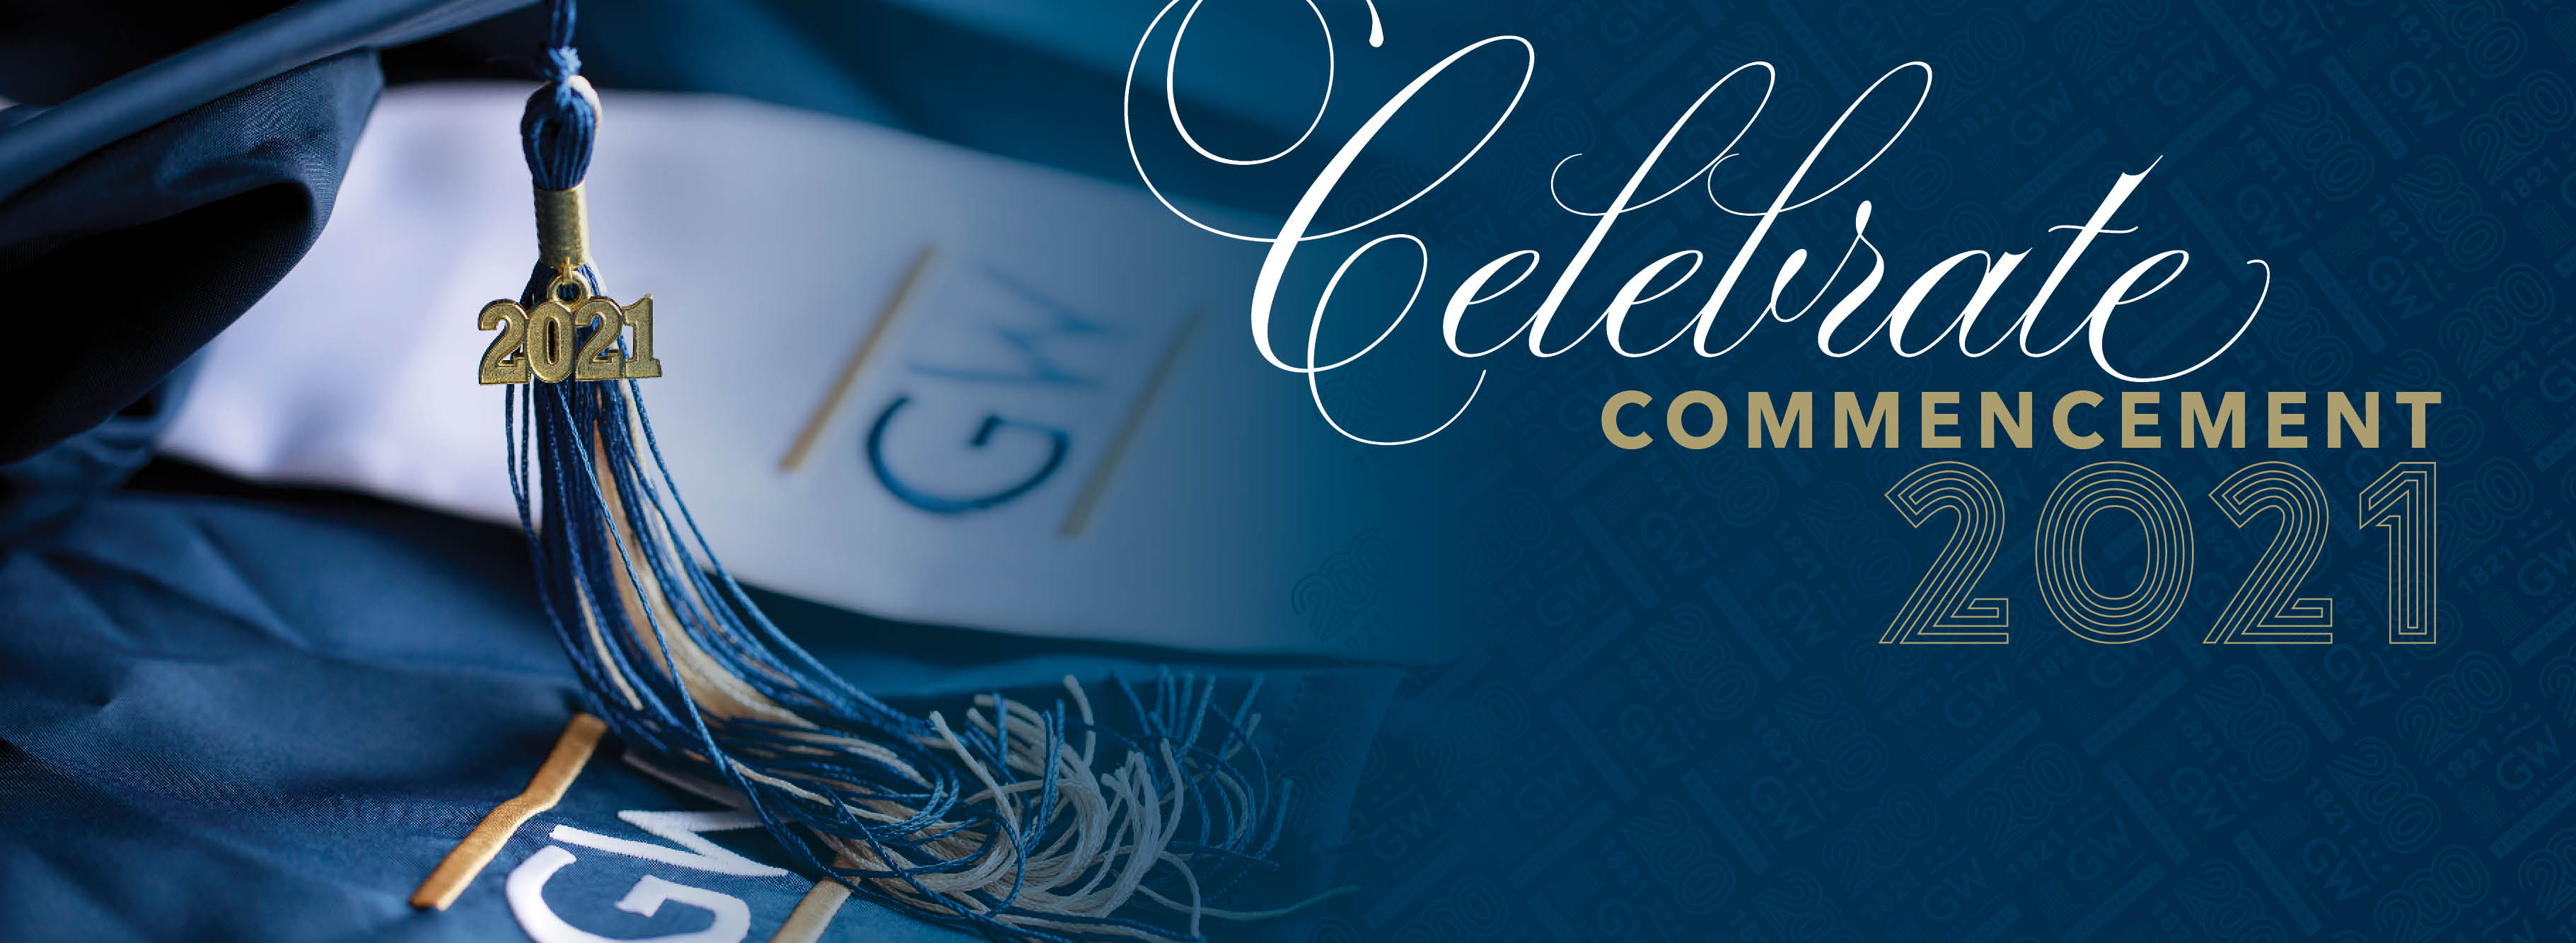 Celebrate Commencement 2021